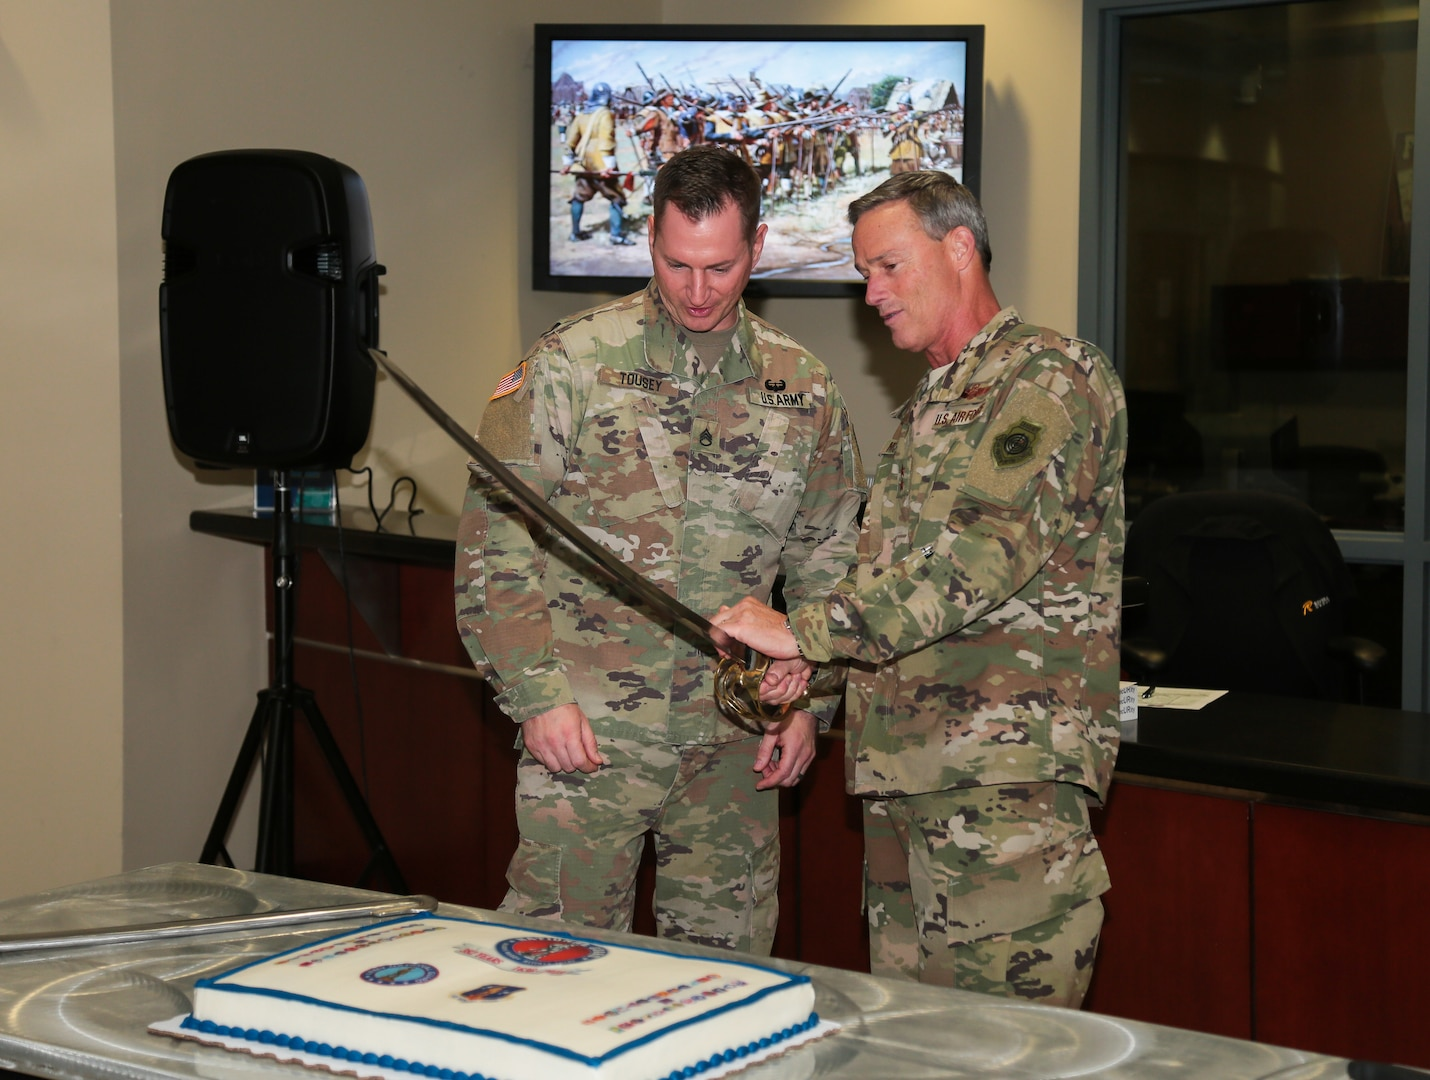 U.S. Air Force Maj. Gen. Jon K. Mott, , U.S. Central Command's director of exercises and training (right) and U.S. Army Staff Sgt. Michael Tousey (left) prepare to cut the cake to honor the National Guard's 382nd birthday at U.S. Central Command headquarters, Dec. 13, 2018. The National Guard administered State Partnership Program, established in 1993, is a key component of CENTCOM's mission and the National Defense Strategy. (U.S. Central Command Public Affairs photo by Tom Gagnier)